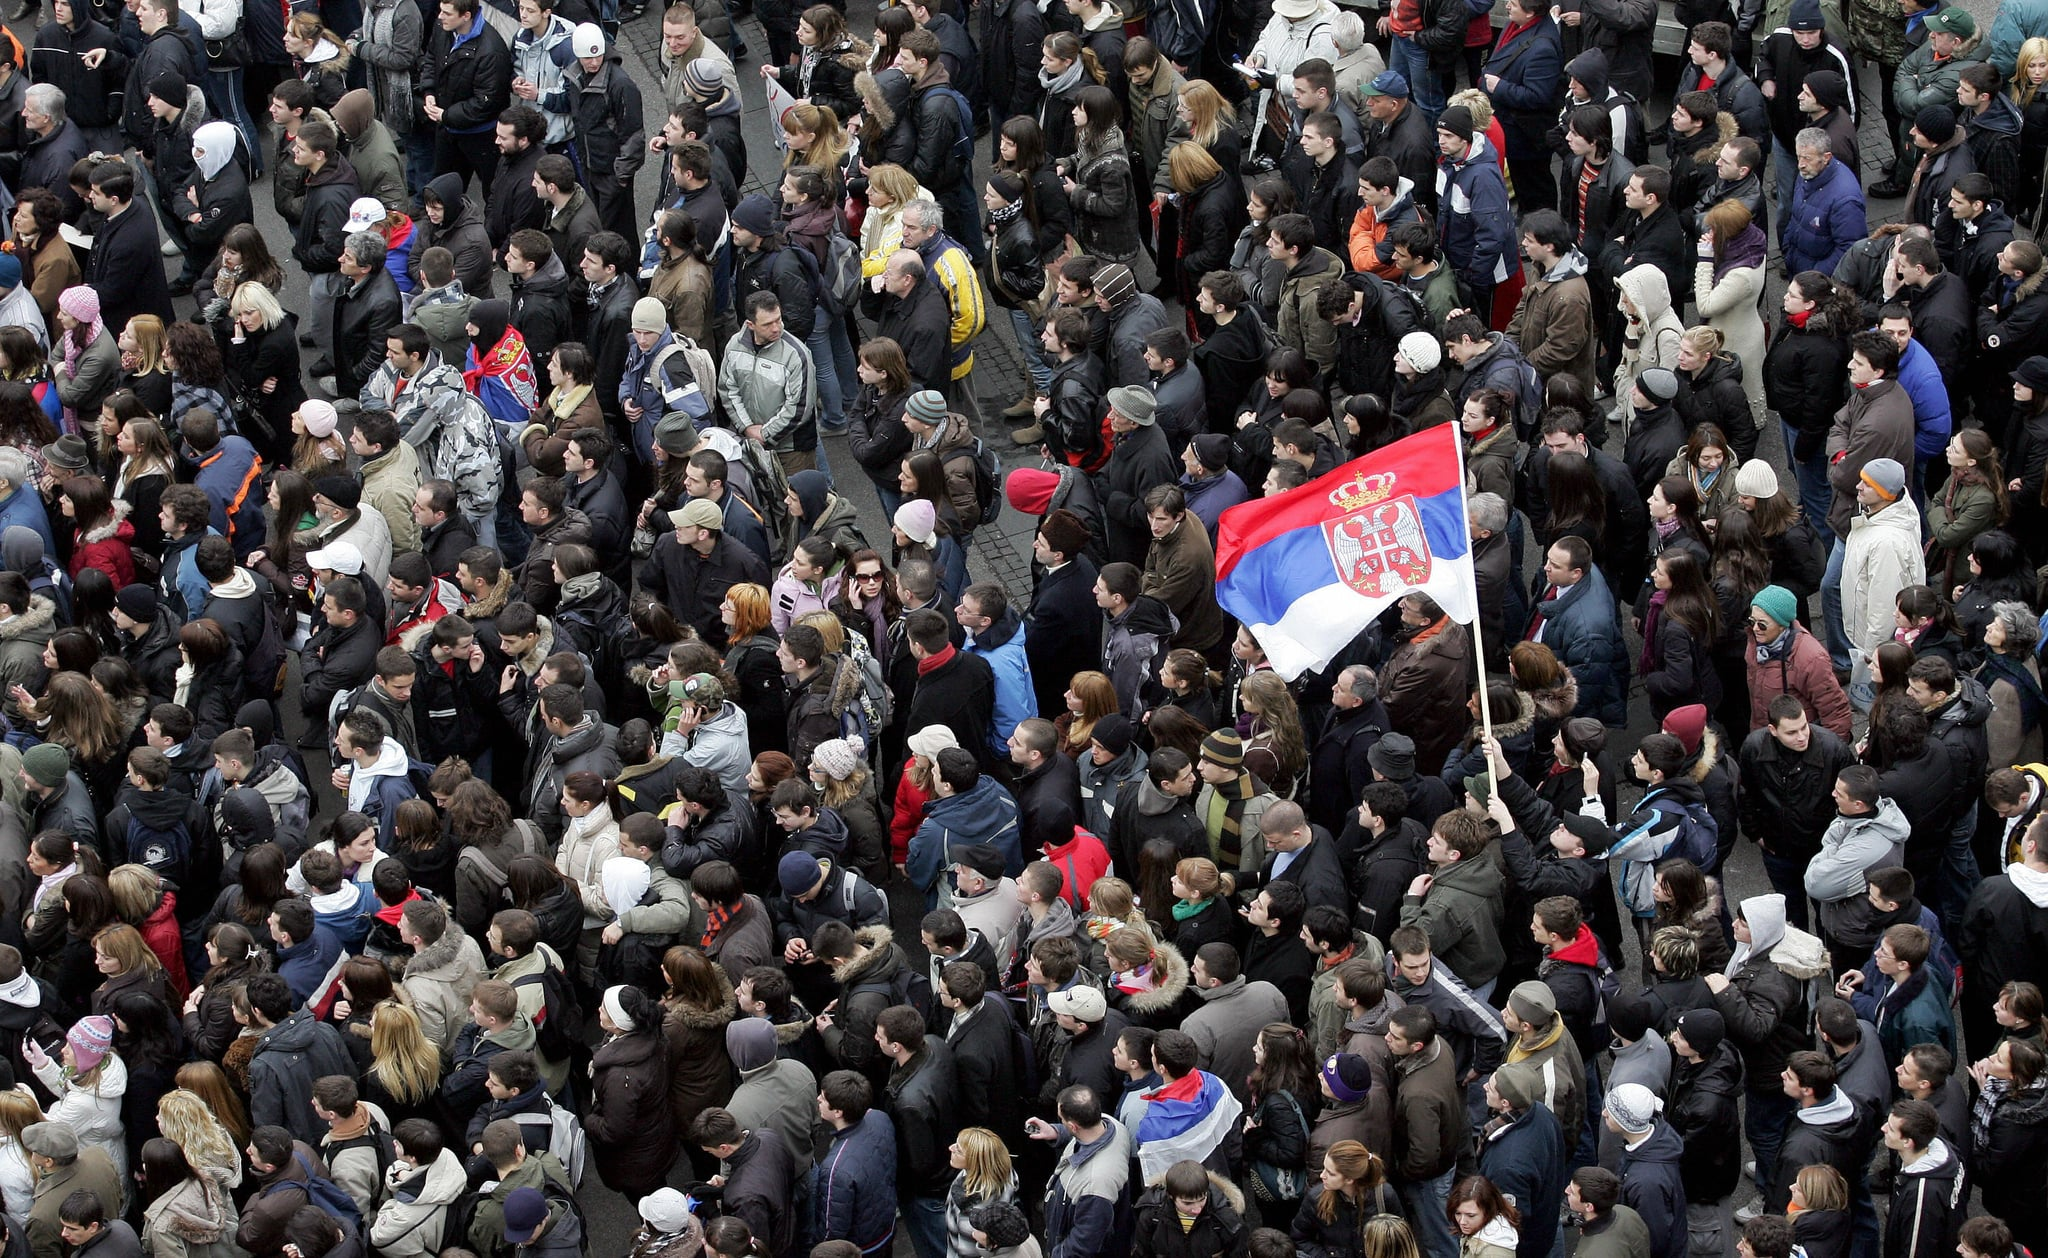 Serbian students wave flags during a peaceful protest in downtown Belgrade on February 18, 2008.